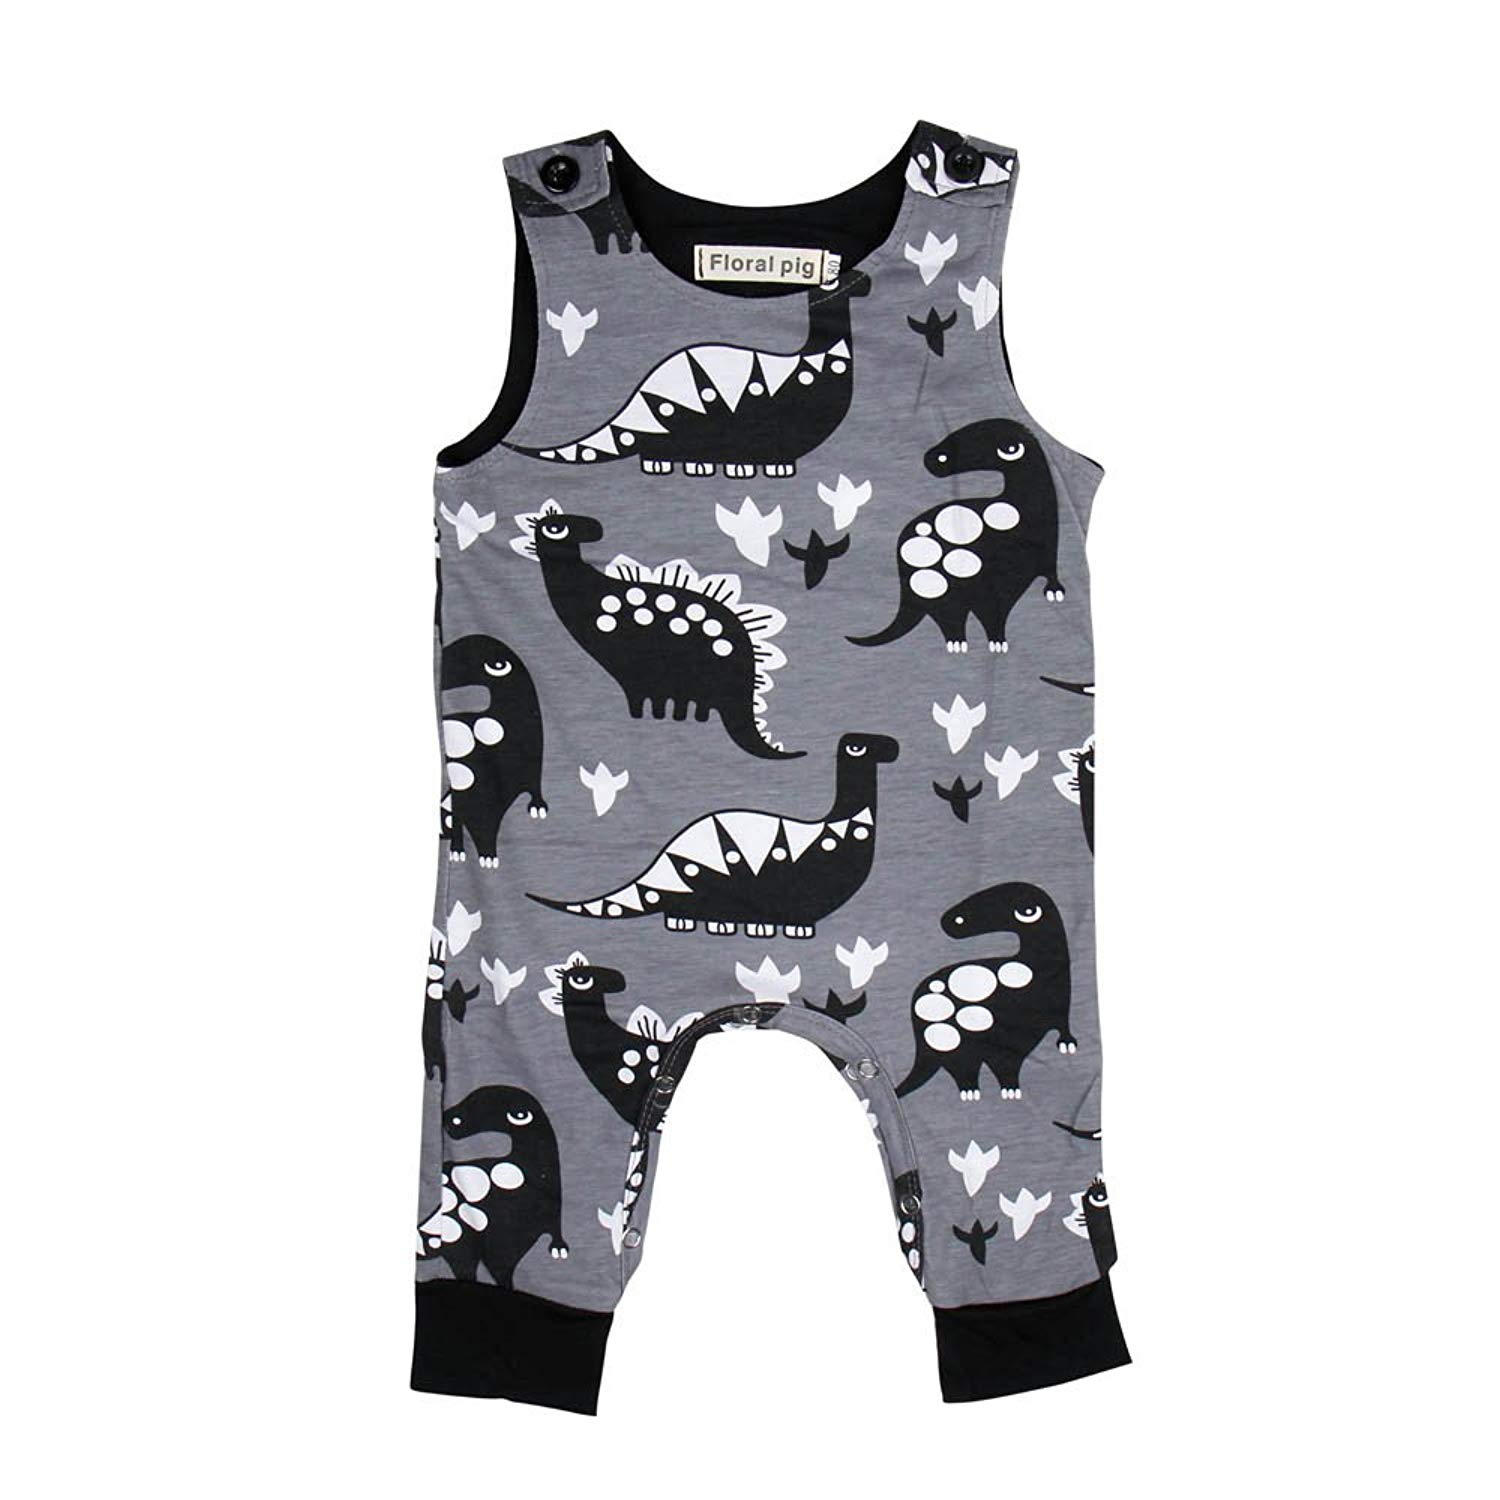 f613da24a Get Quotations · Hot Sale,Yamally Toddler Tank Tops Baby Boy Clothes Girl  Dinosaur Overall Vest Jumpsuit